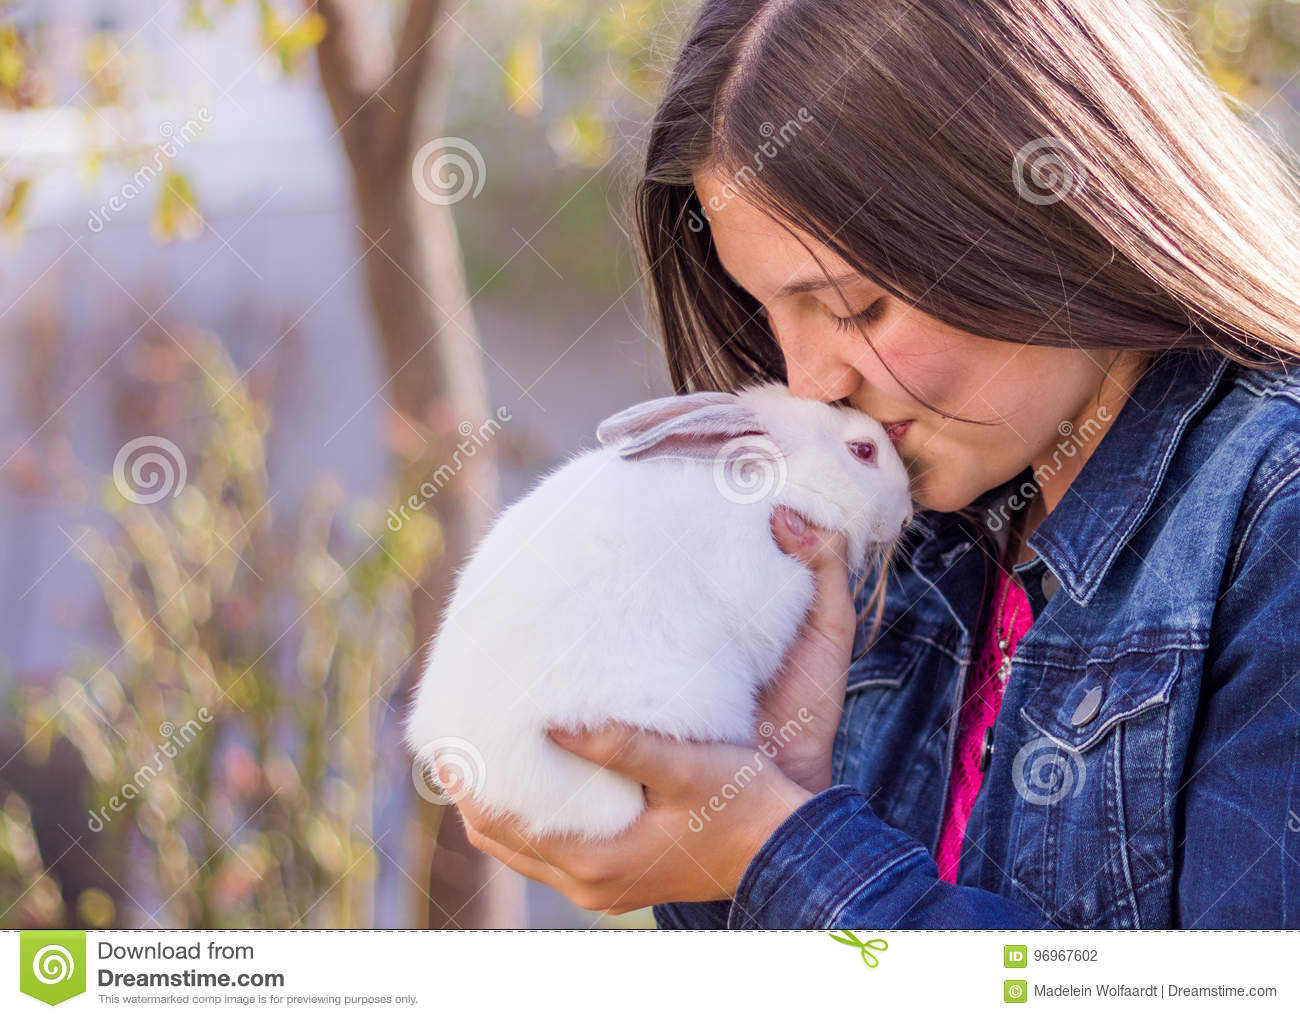 Young teen holding a baby white rabbit kissing it on the forehead